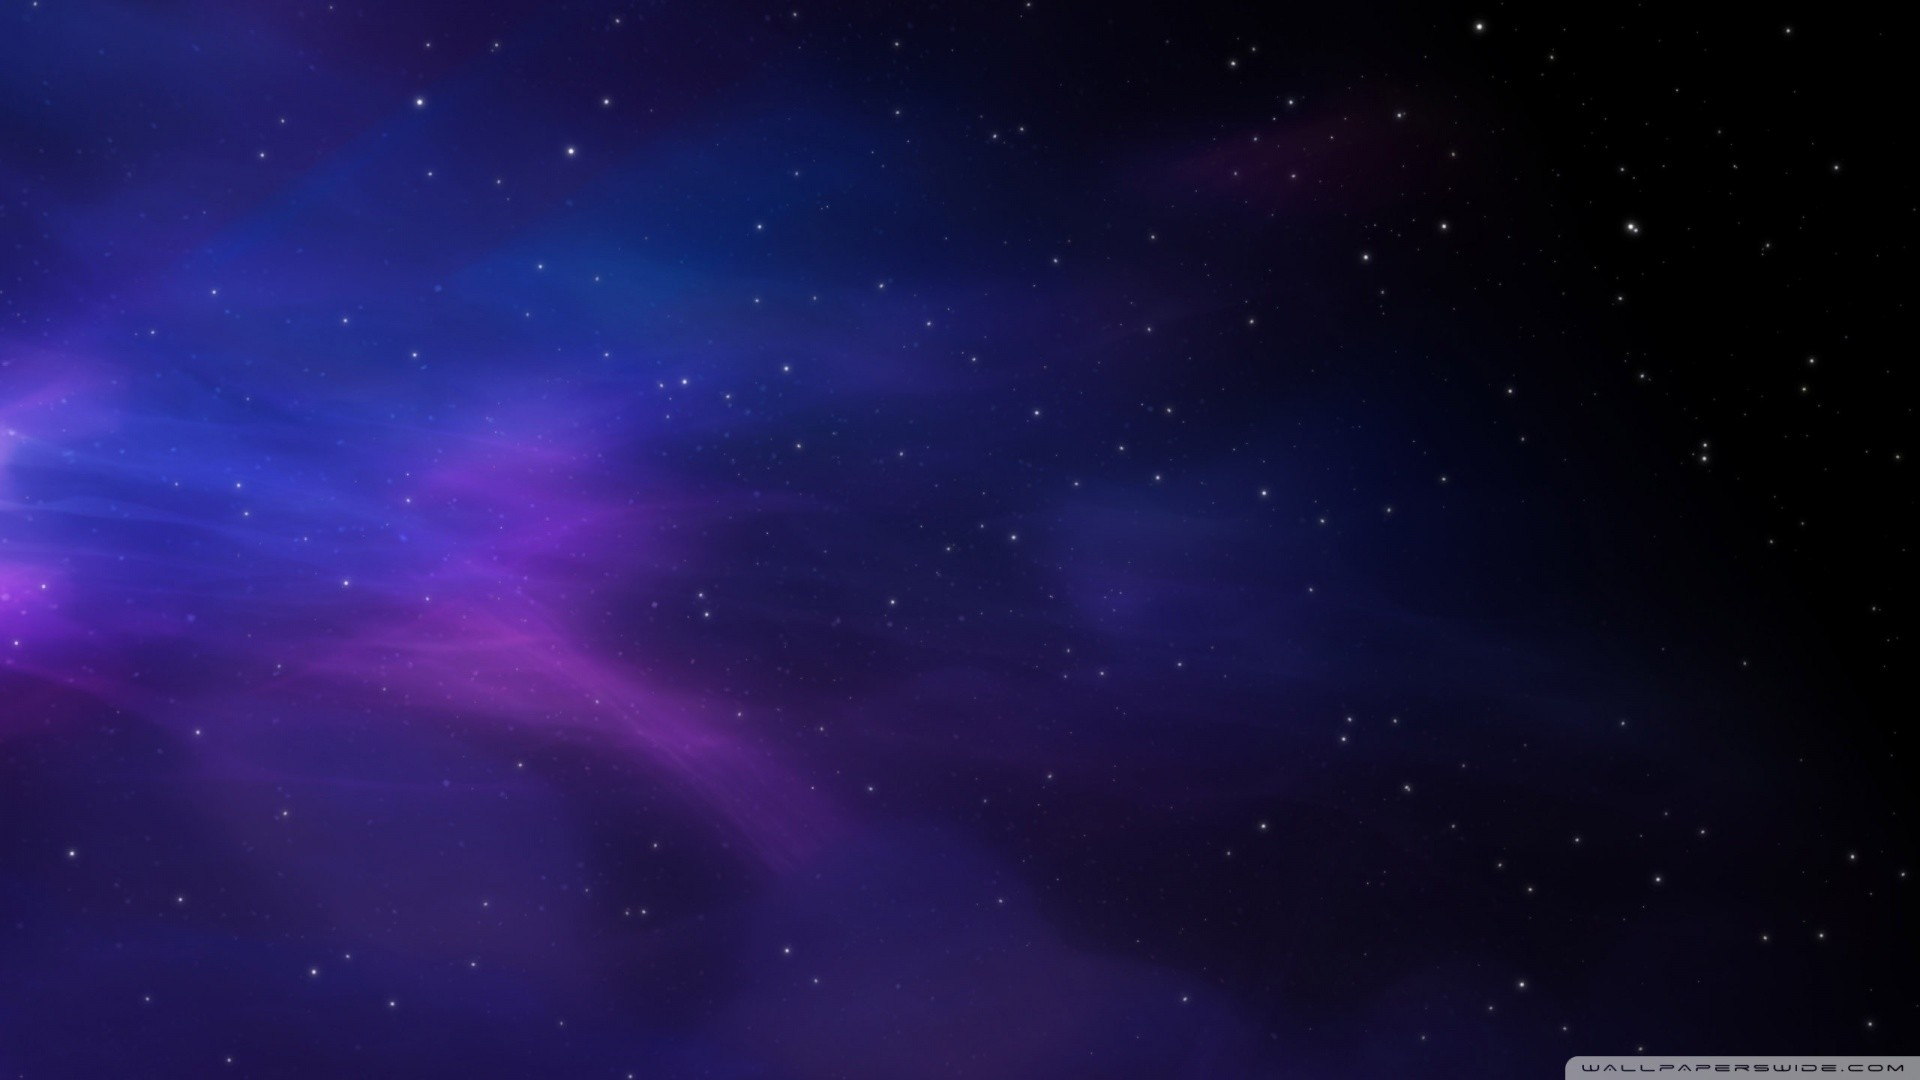 1920x1080 Blue Star In Space Wal.